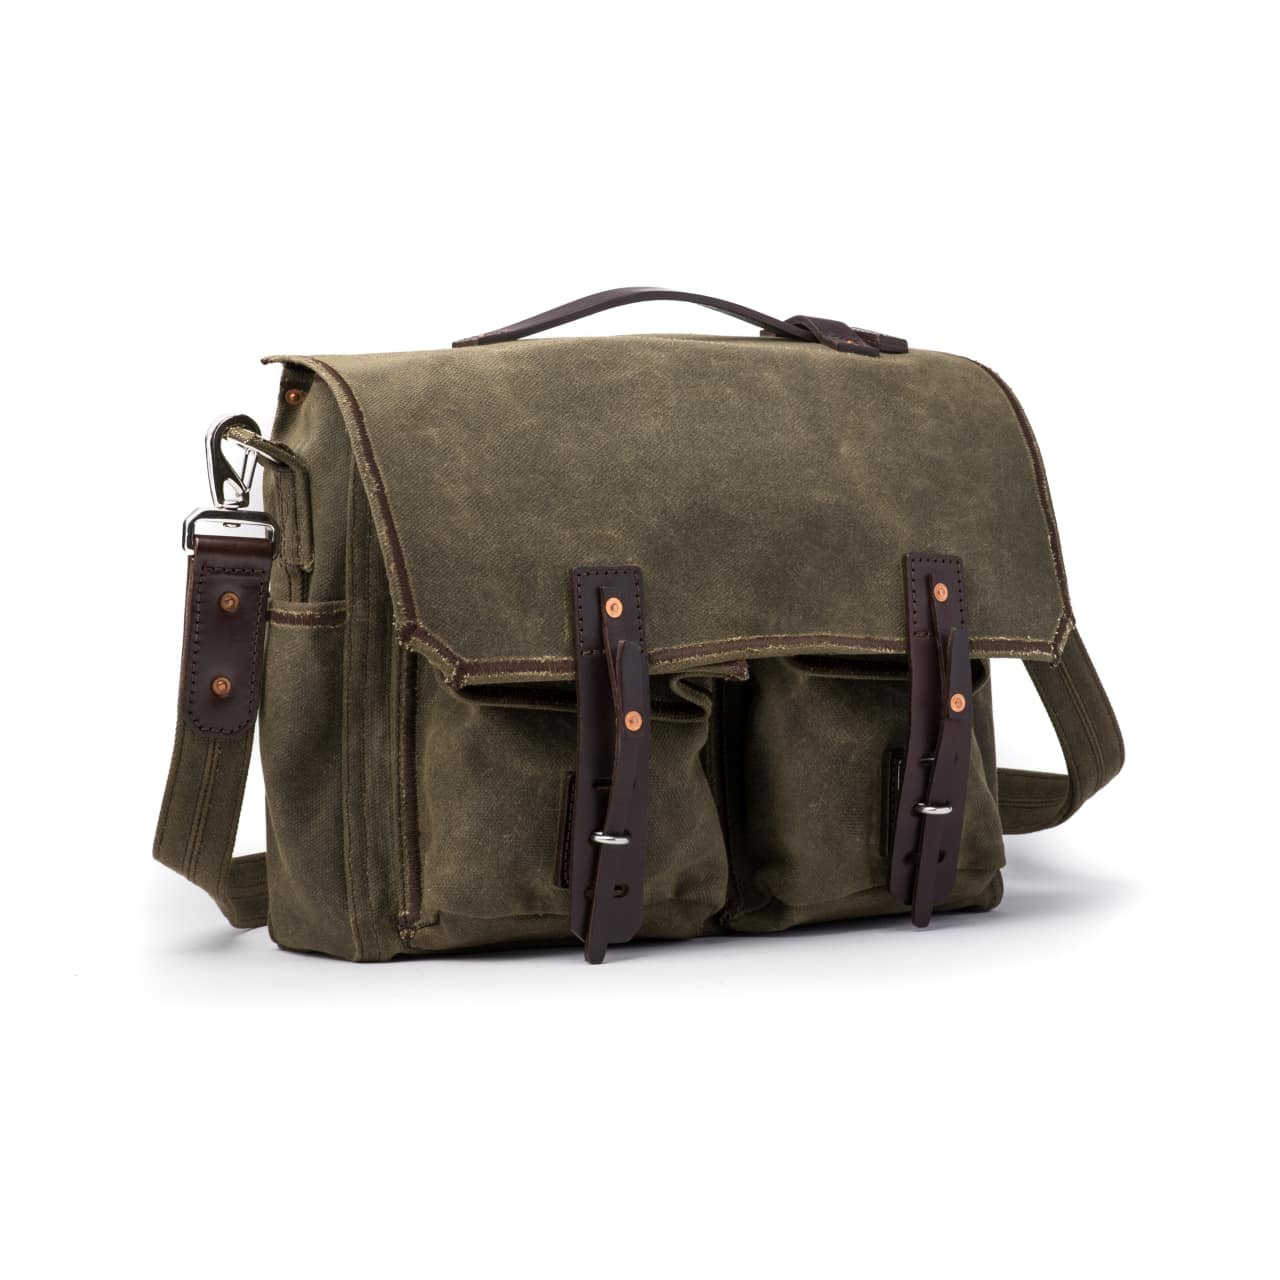 Saddleback Leather Canvas Front Pocket Gear Bag - Messenger Bag with 100 Year Warranty by Saddleback Leather Co.